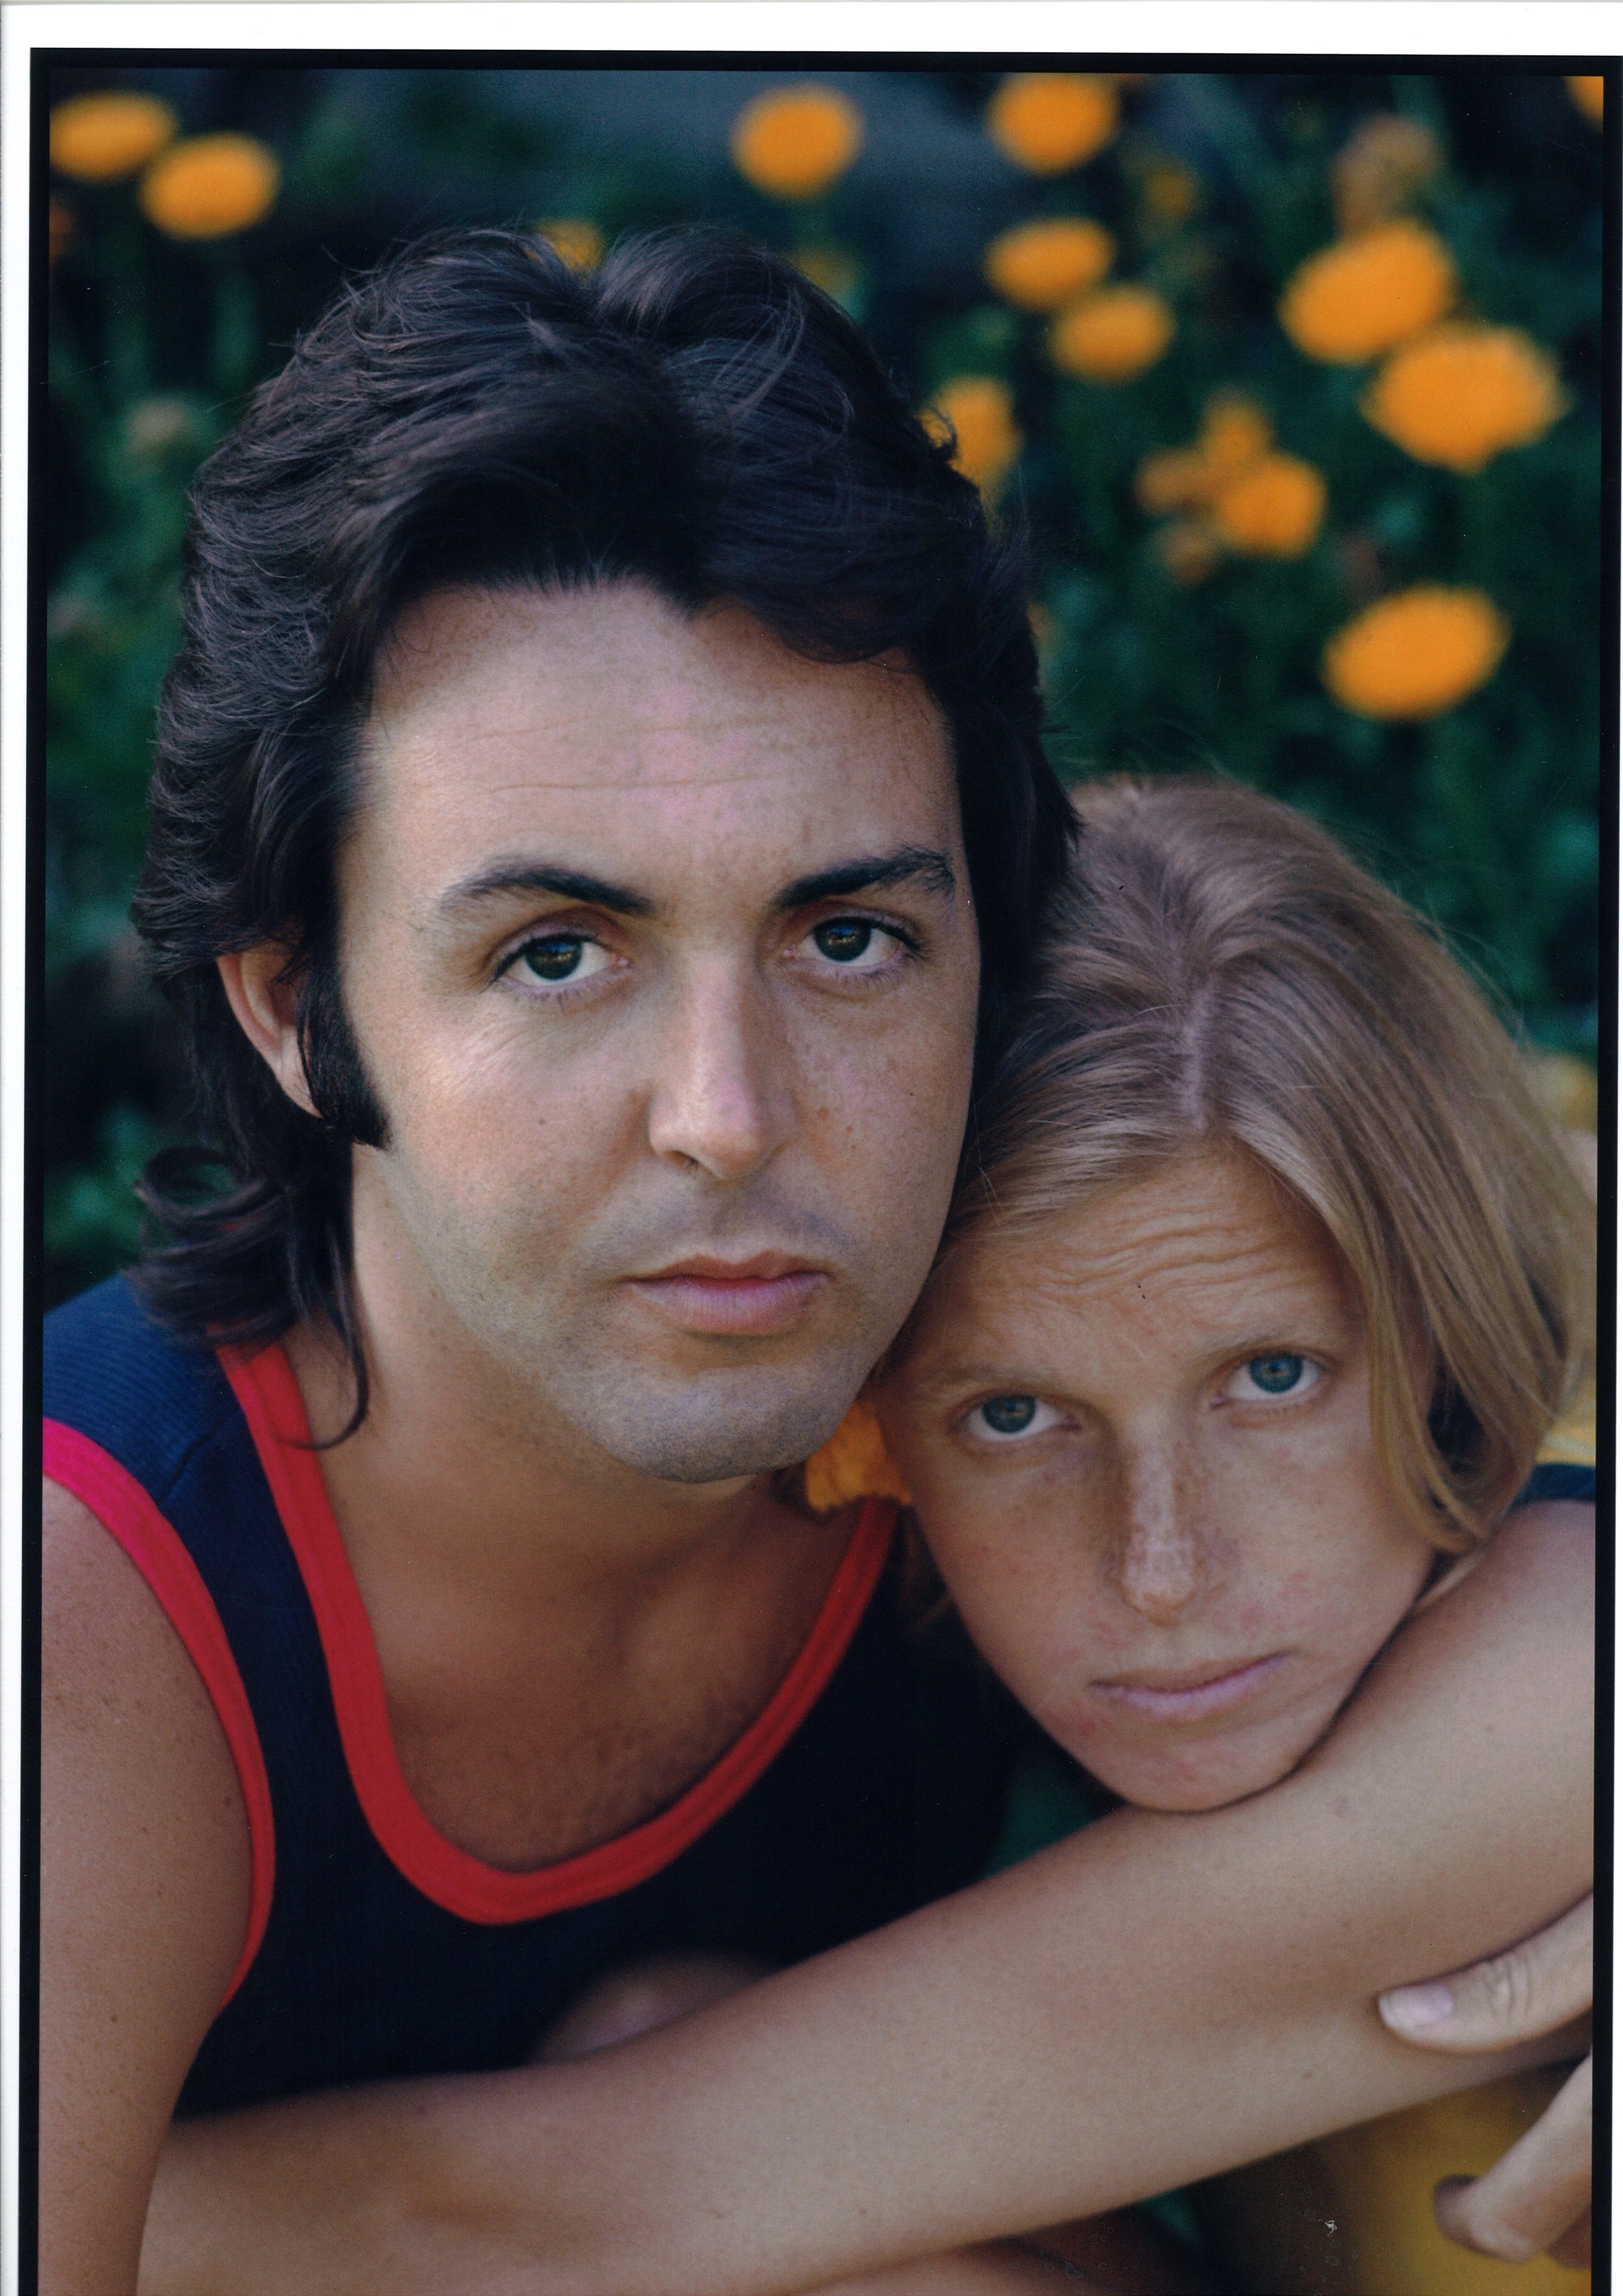 Paul & Linda McCartney, Cover of Life Magazine, 1971 by Henry Diltz